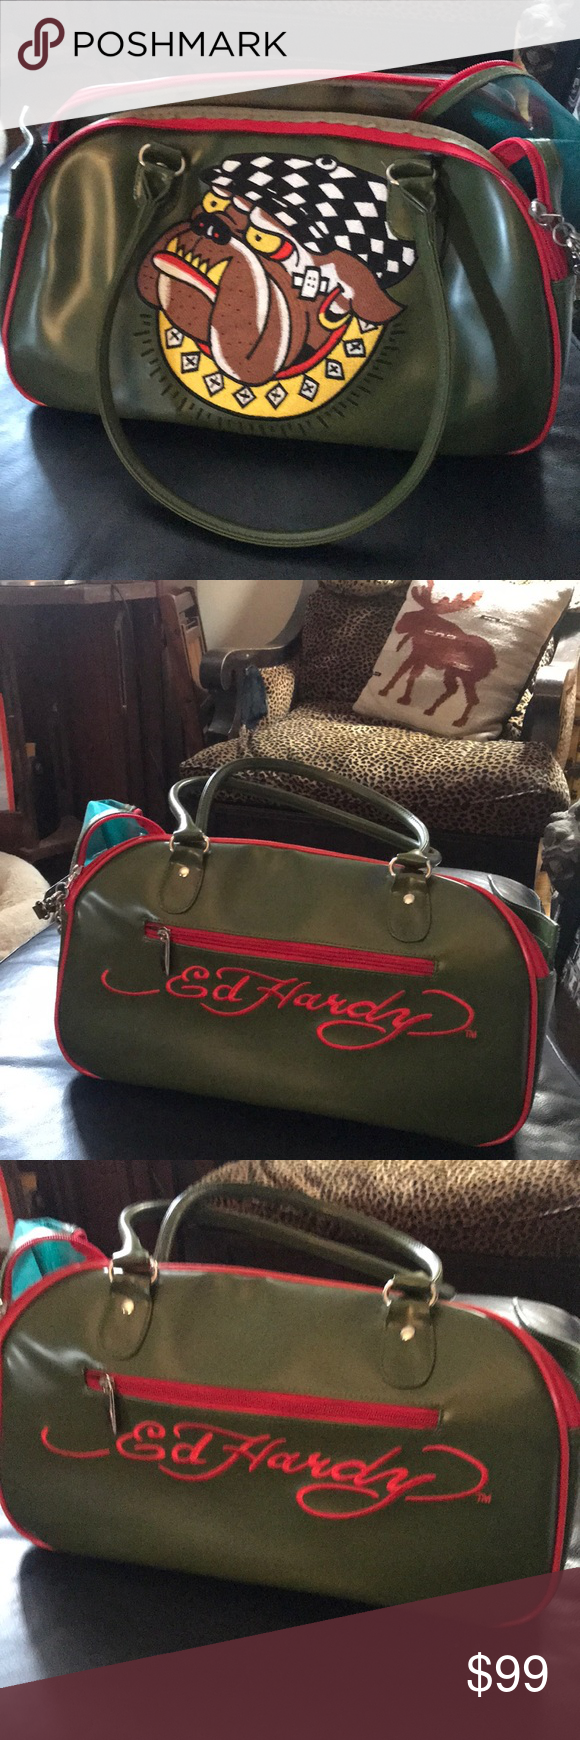 Ed Hardy doggy Carrier Ed Hardy olive green brand new never used doggy  carrier absolutely beautiful d5a69c4e55